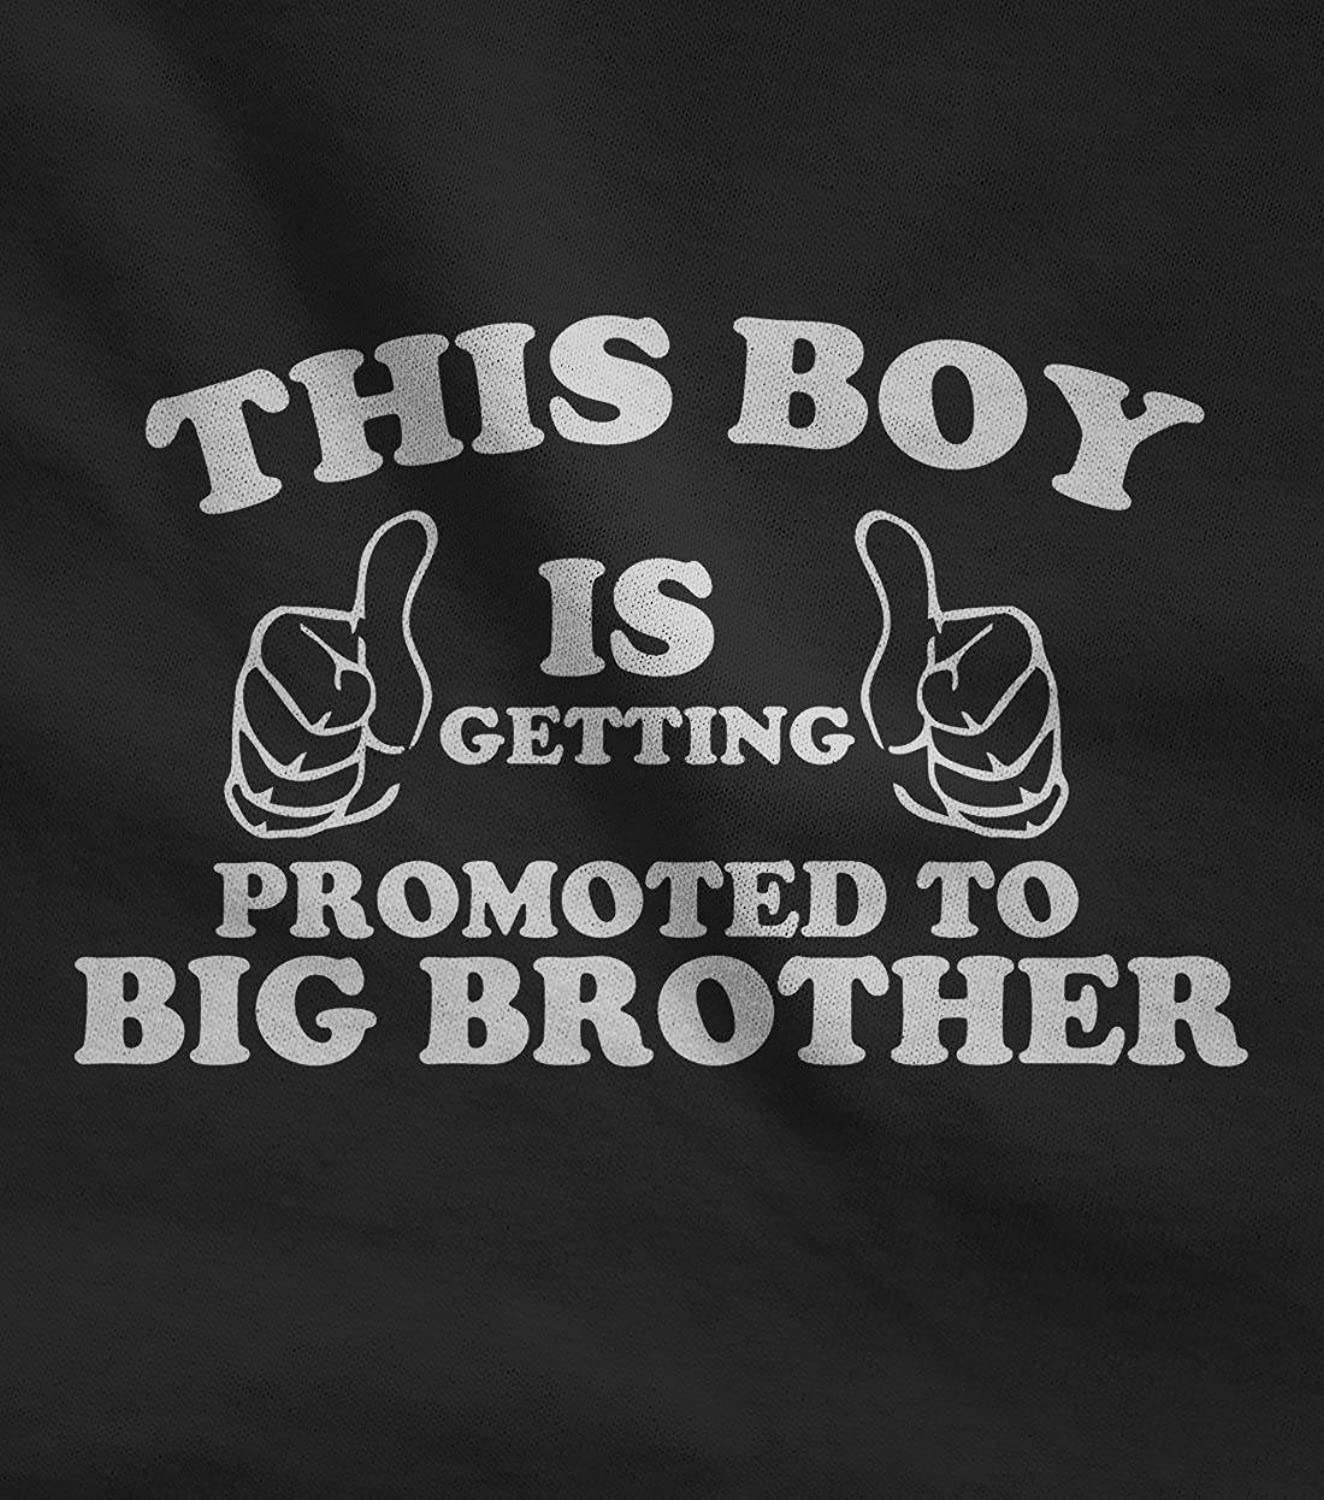 com this boy is getting promoted to big brother kids t com this boy is getting promoted to big brother kids t shirt stickers clothing